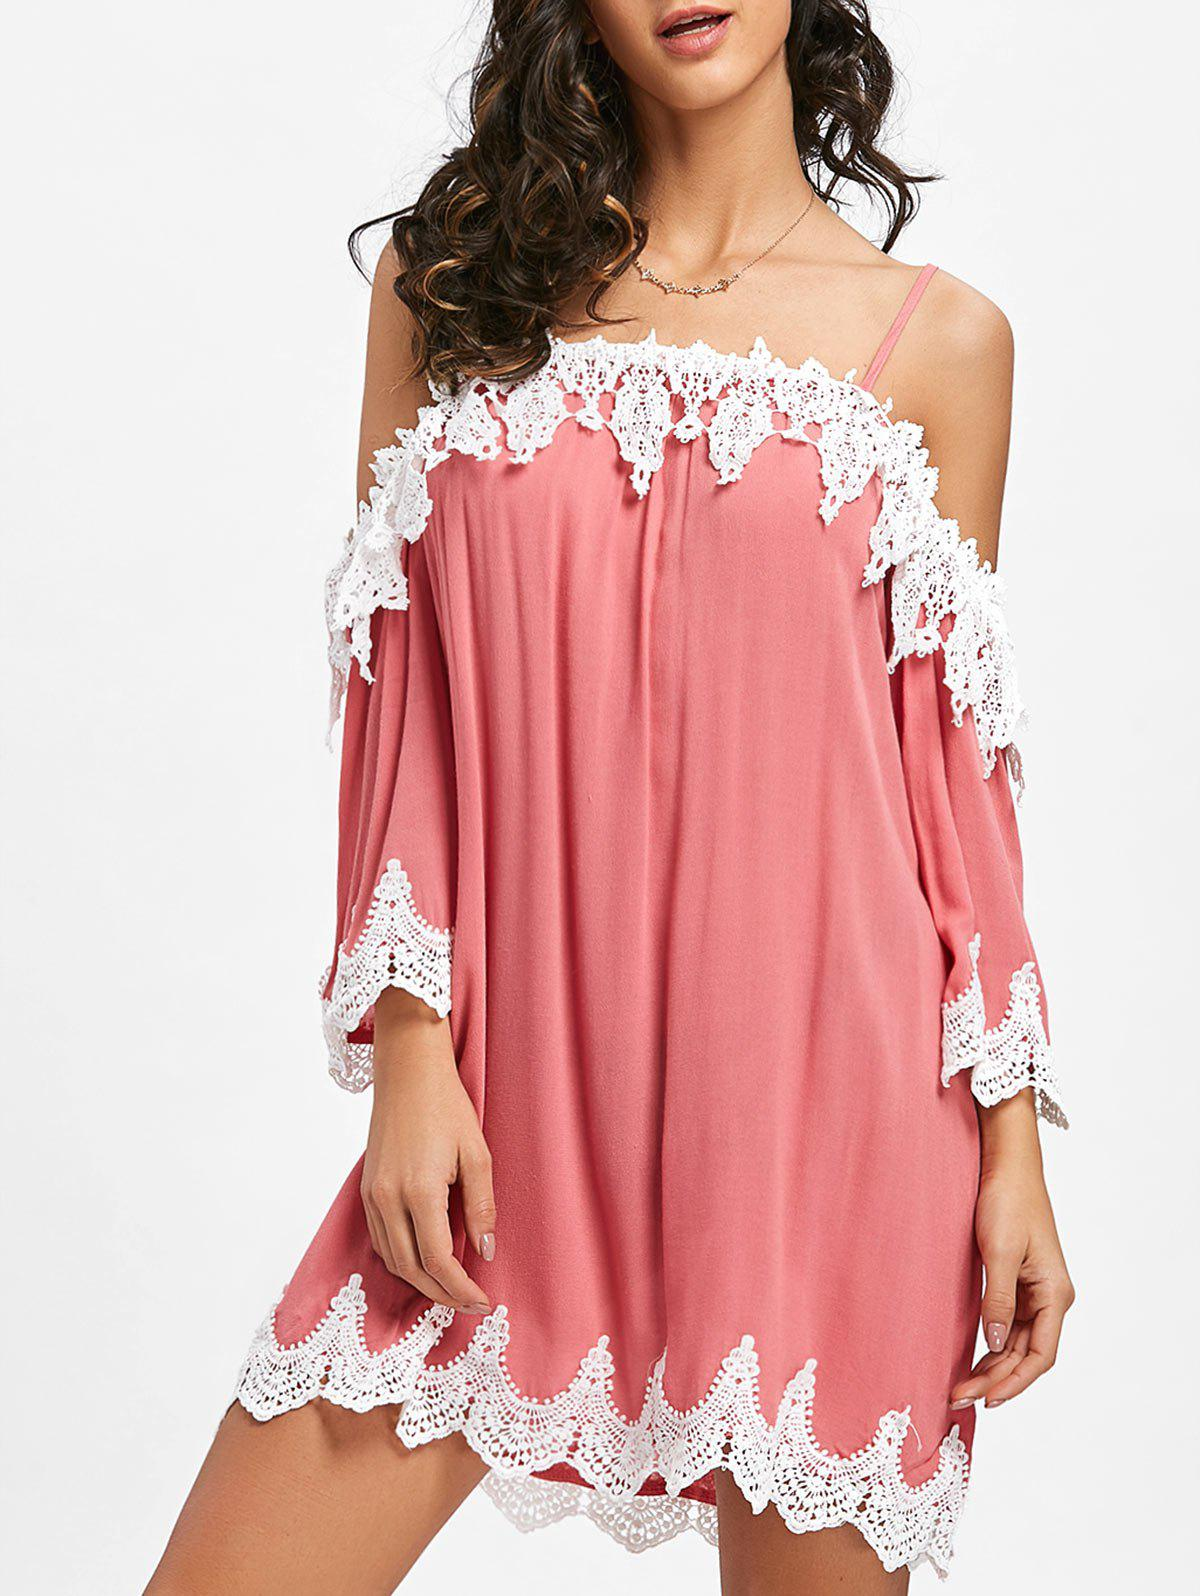 Crochet Trimmed Open Shoulder Mini Dress - PINK M